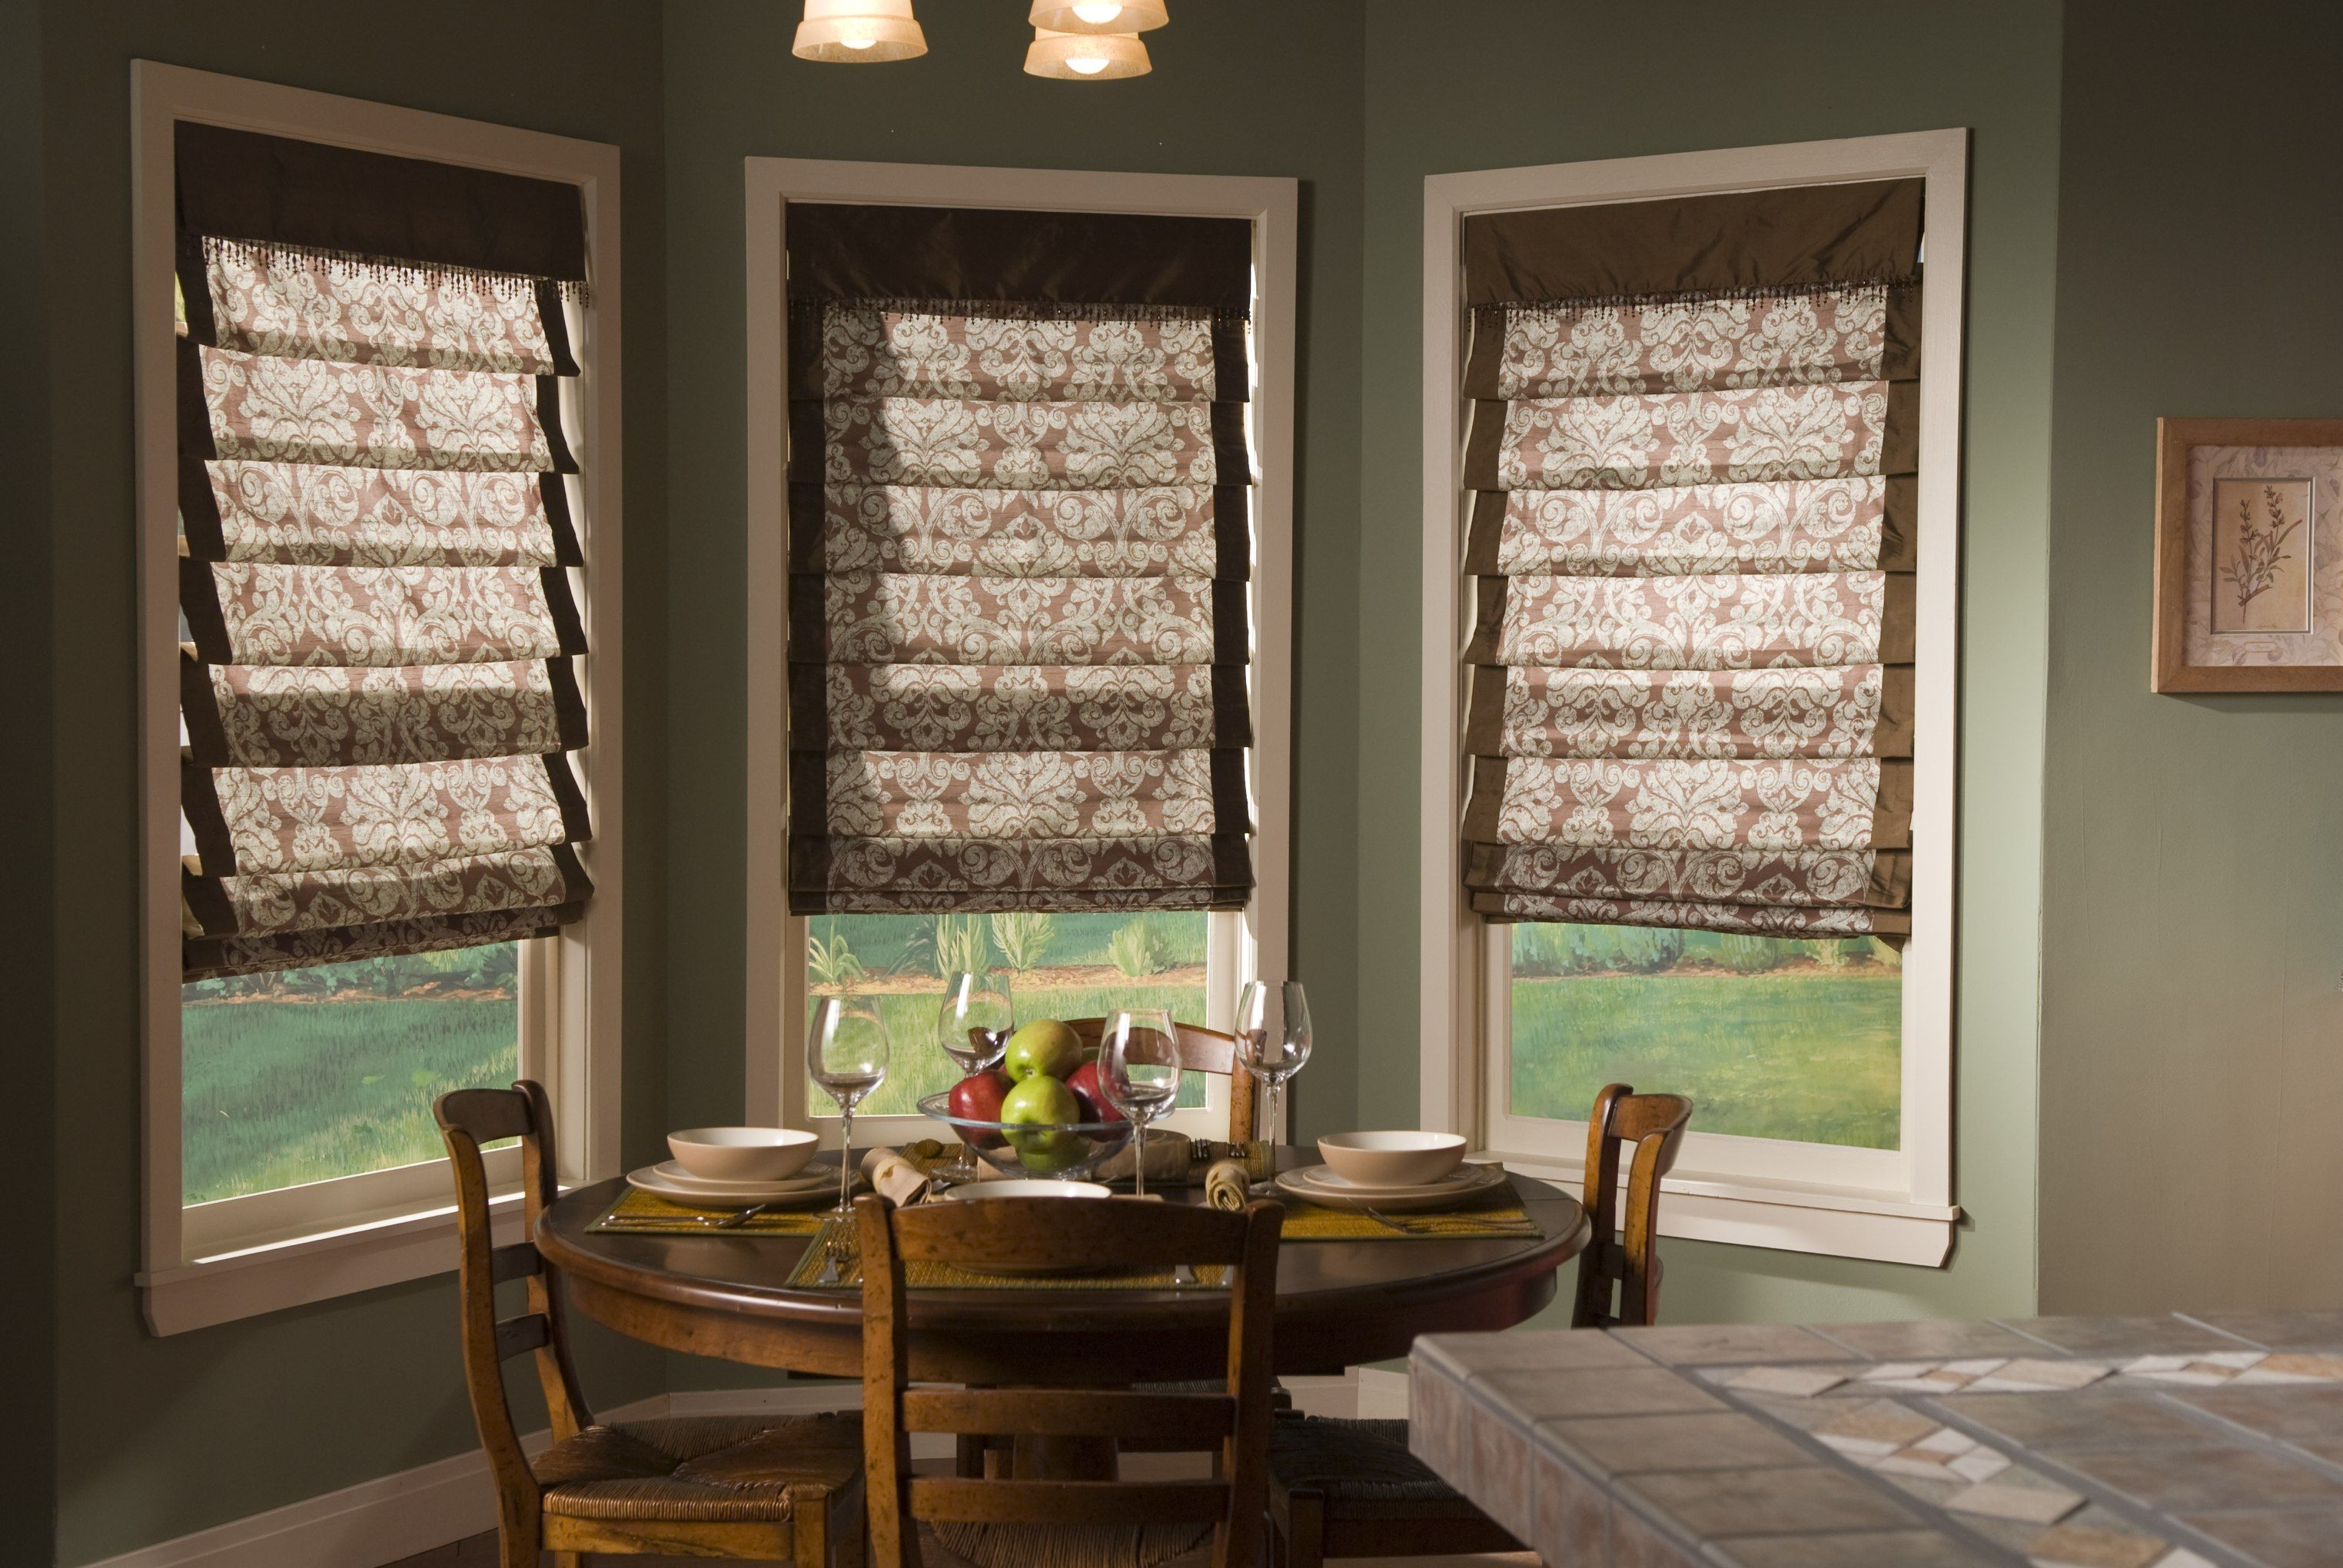 Dining Room Window Blinds Soft Romans Make For A Cozy Breakfast Nook  Banded Fabric